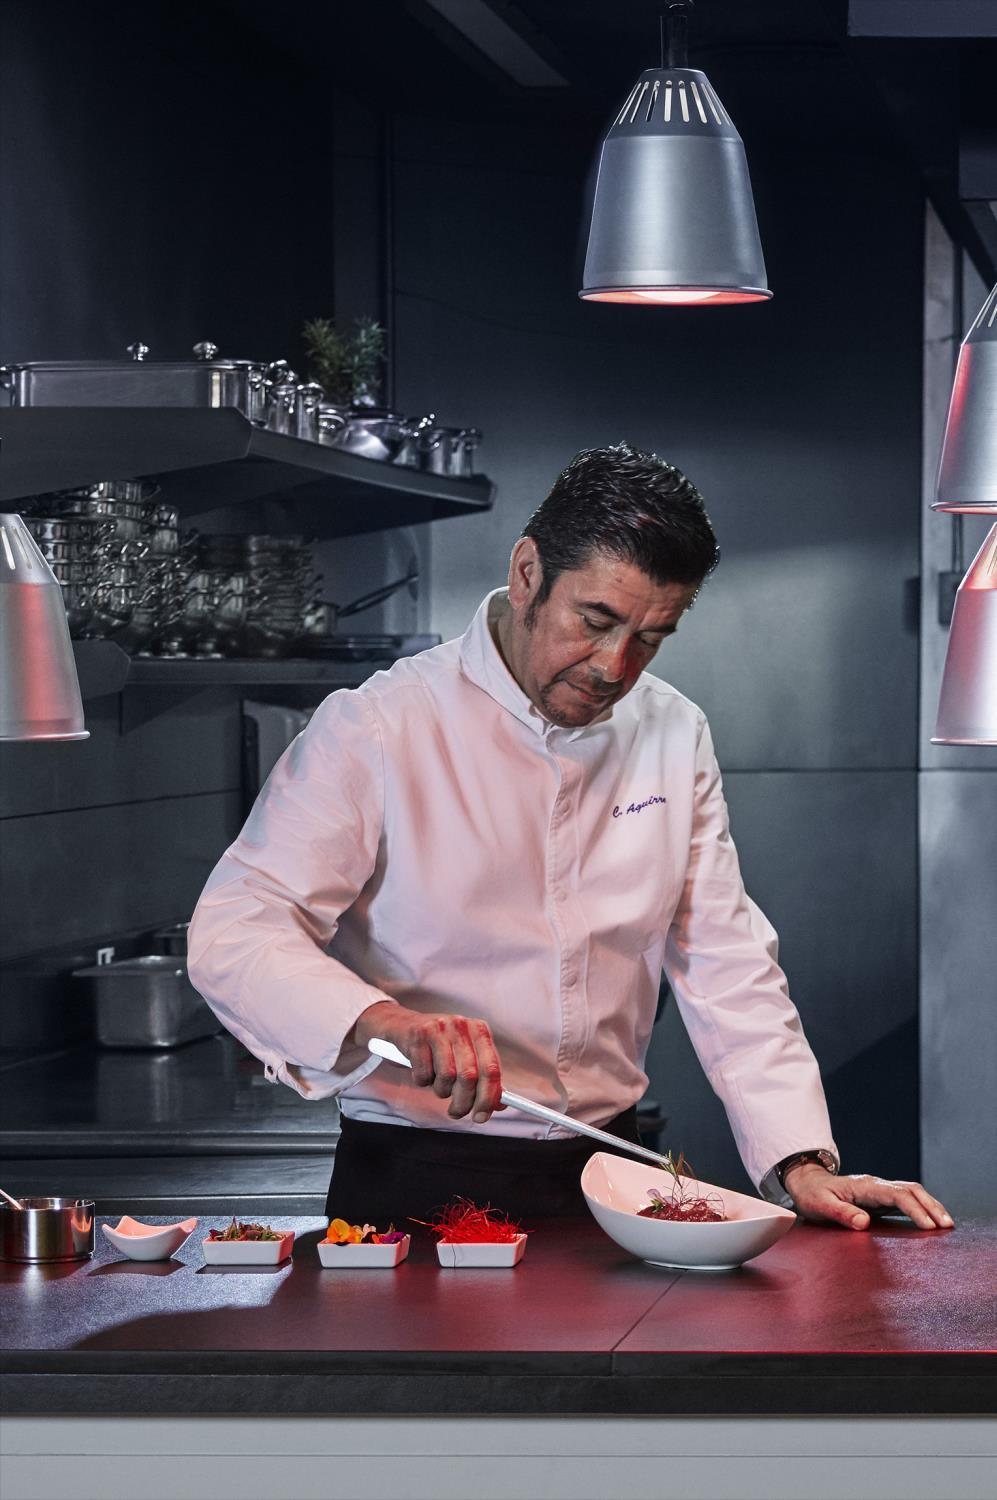 he creator of the delicious and multifarious menus of Royal Catering is the chef of Fairmont Rey Juan Carlos I, Claudio Aguirre.